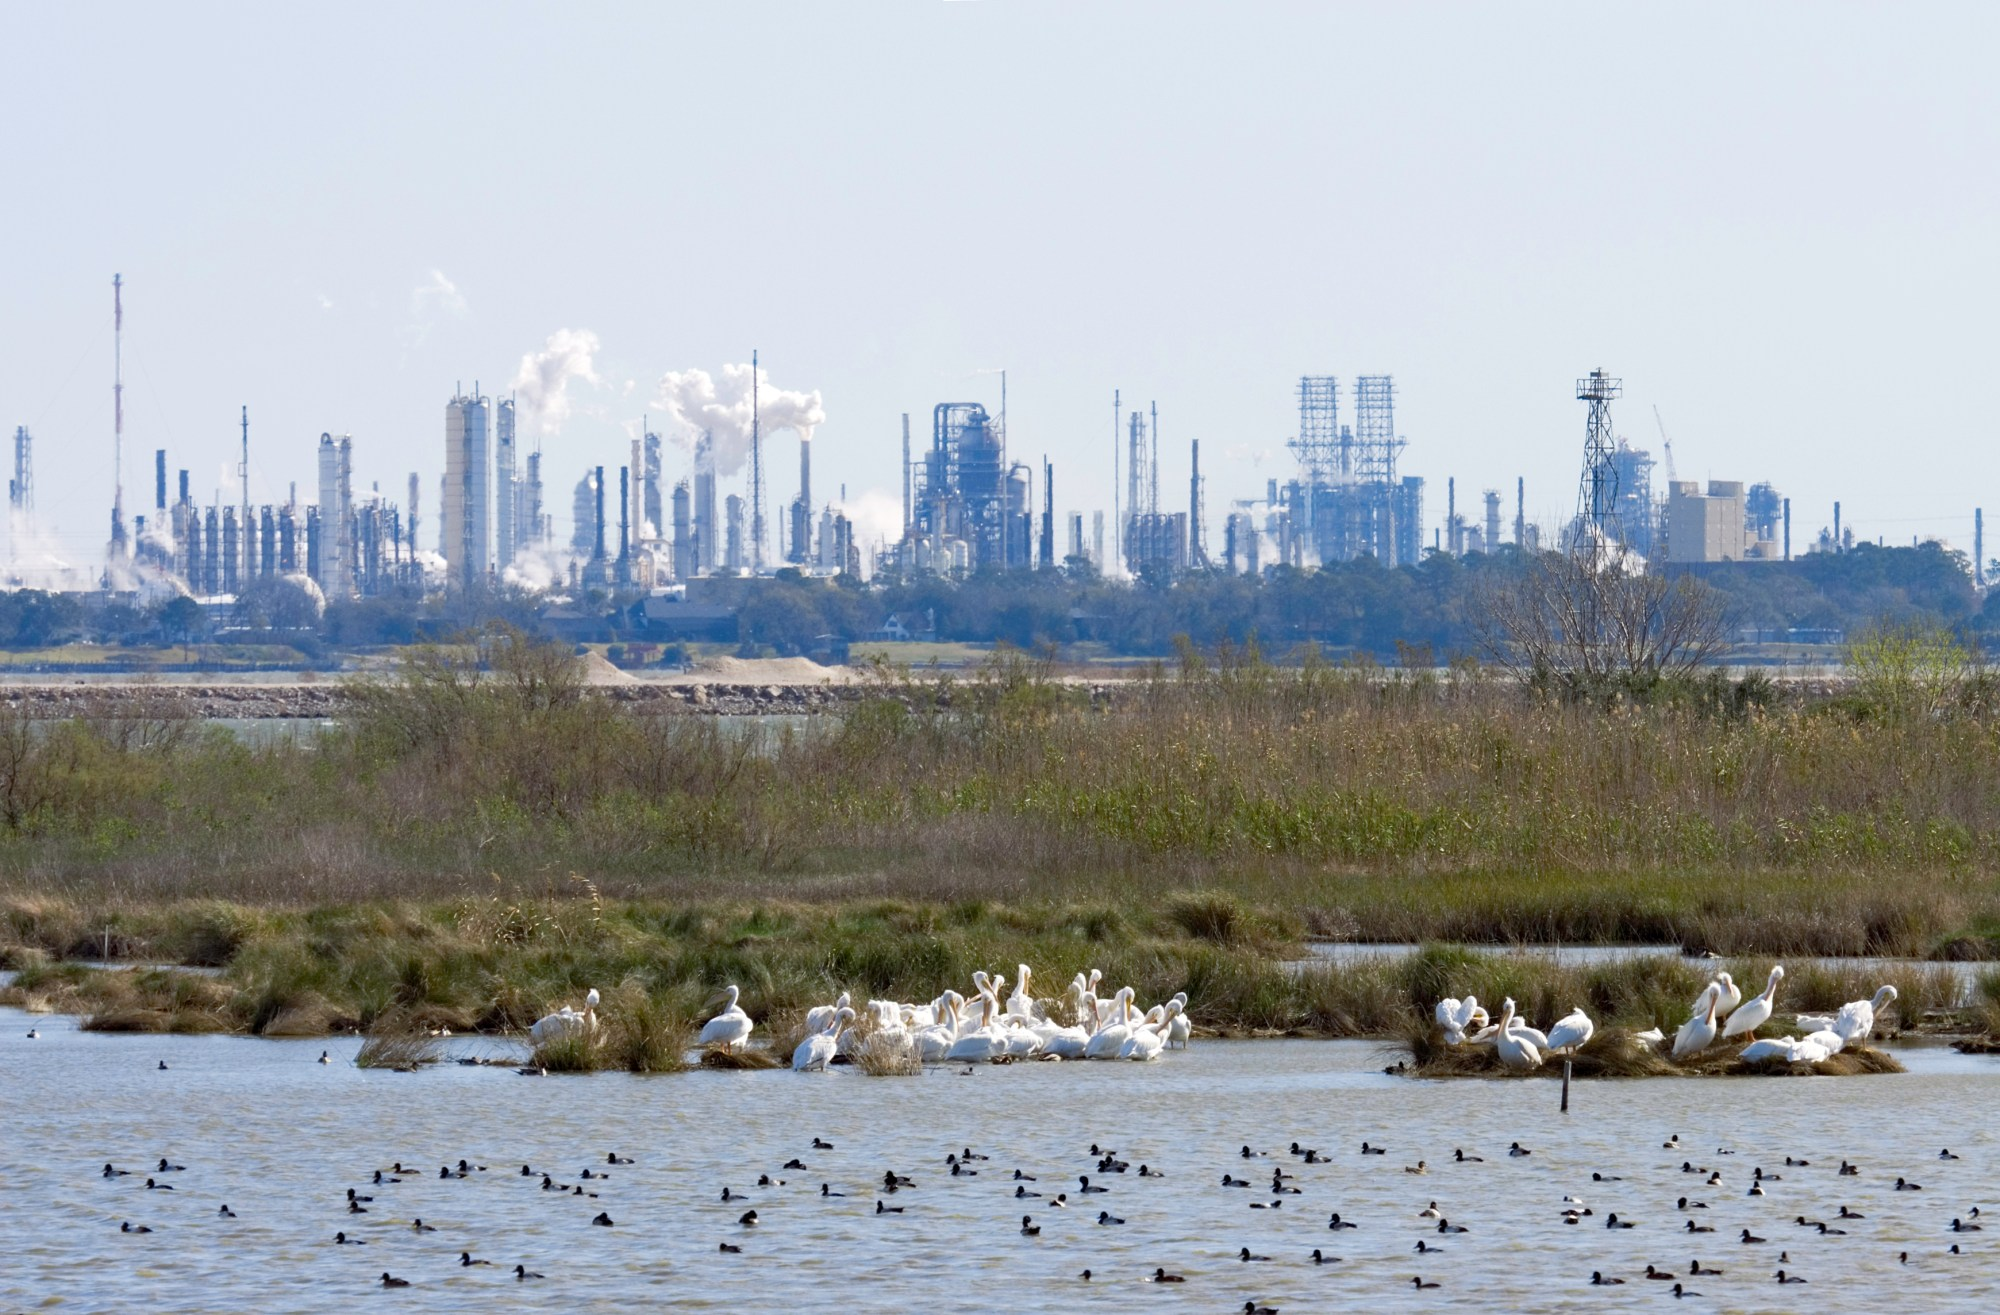 White Pelicans, ducks, marsh and a process plant. Shot at San Jacinto Monument Park near Houston, Texas.